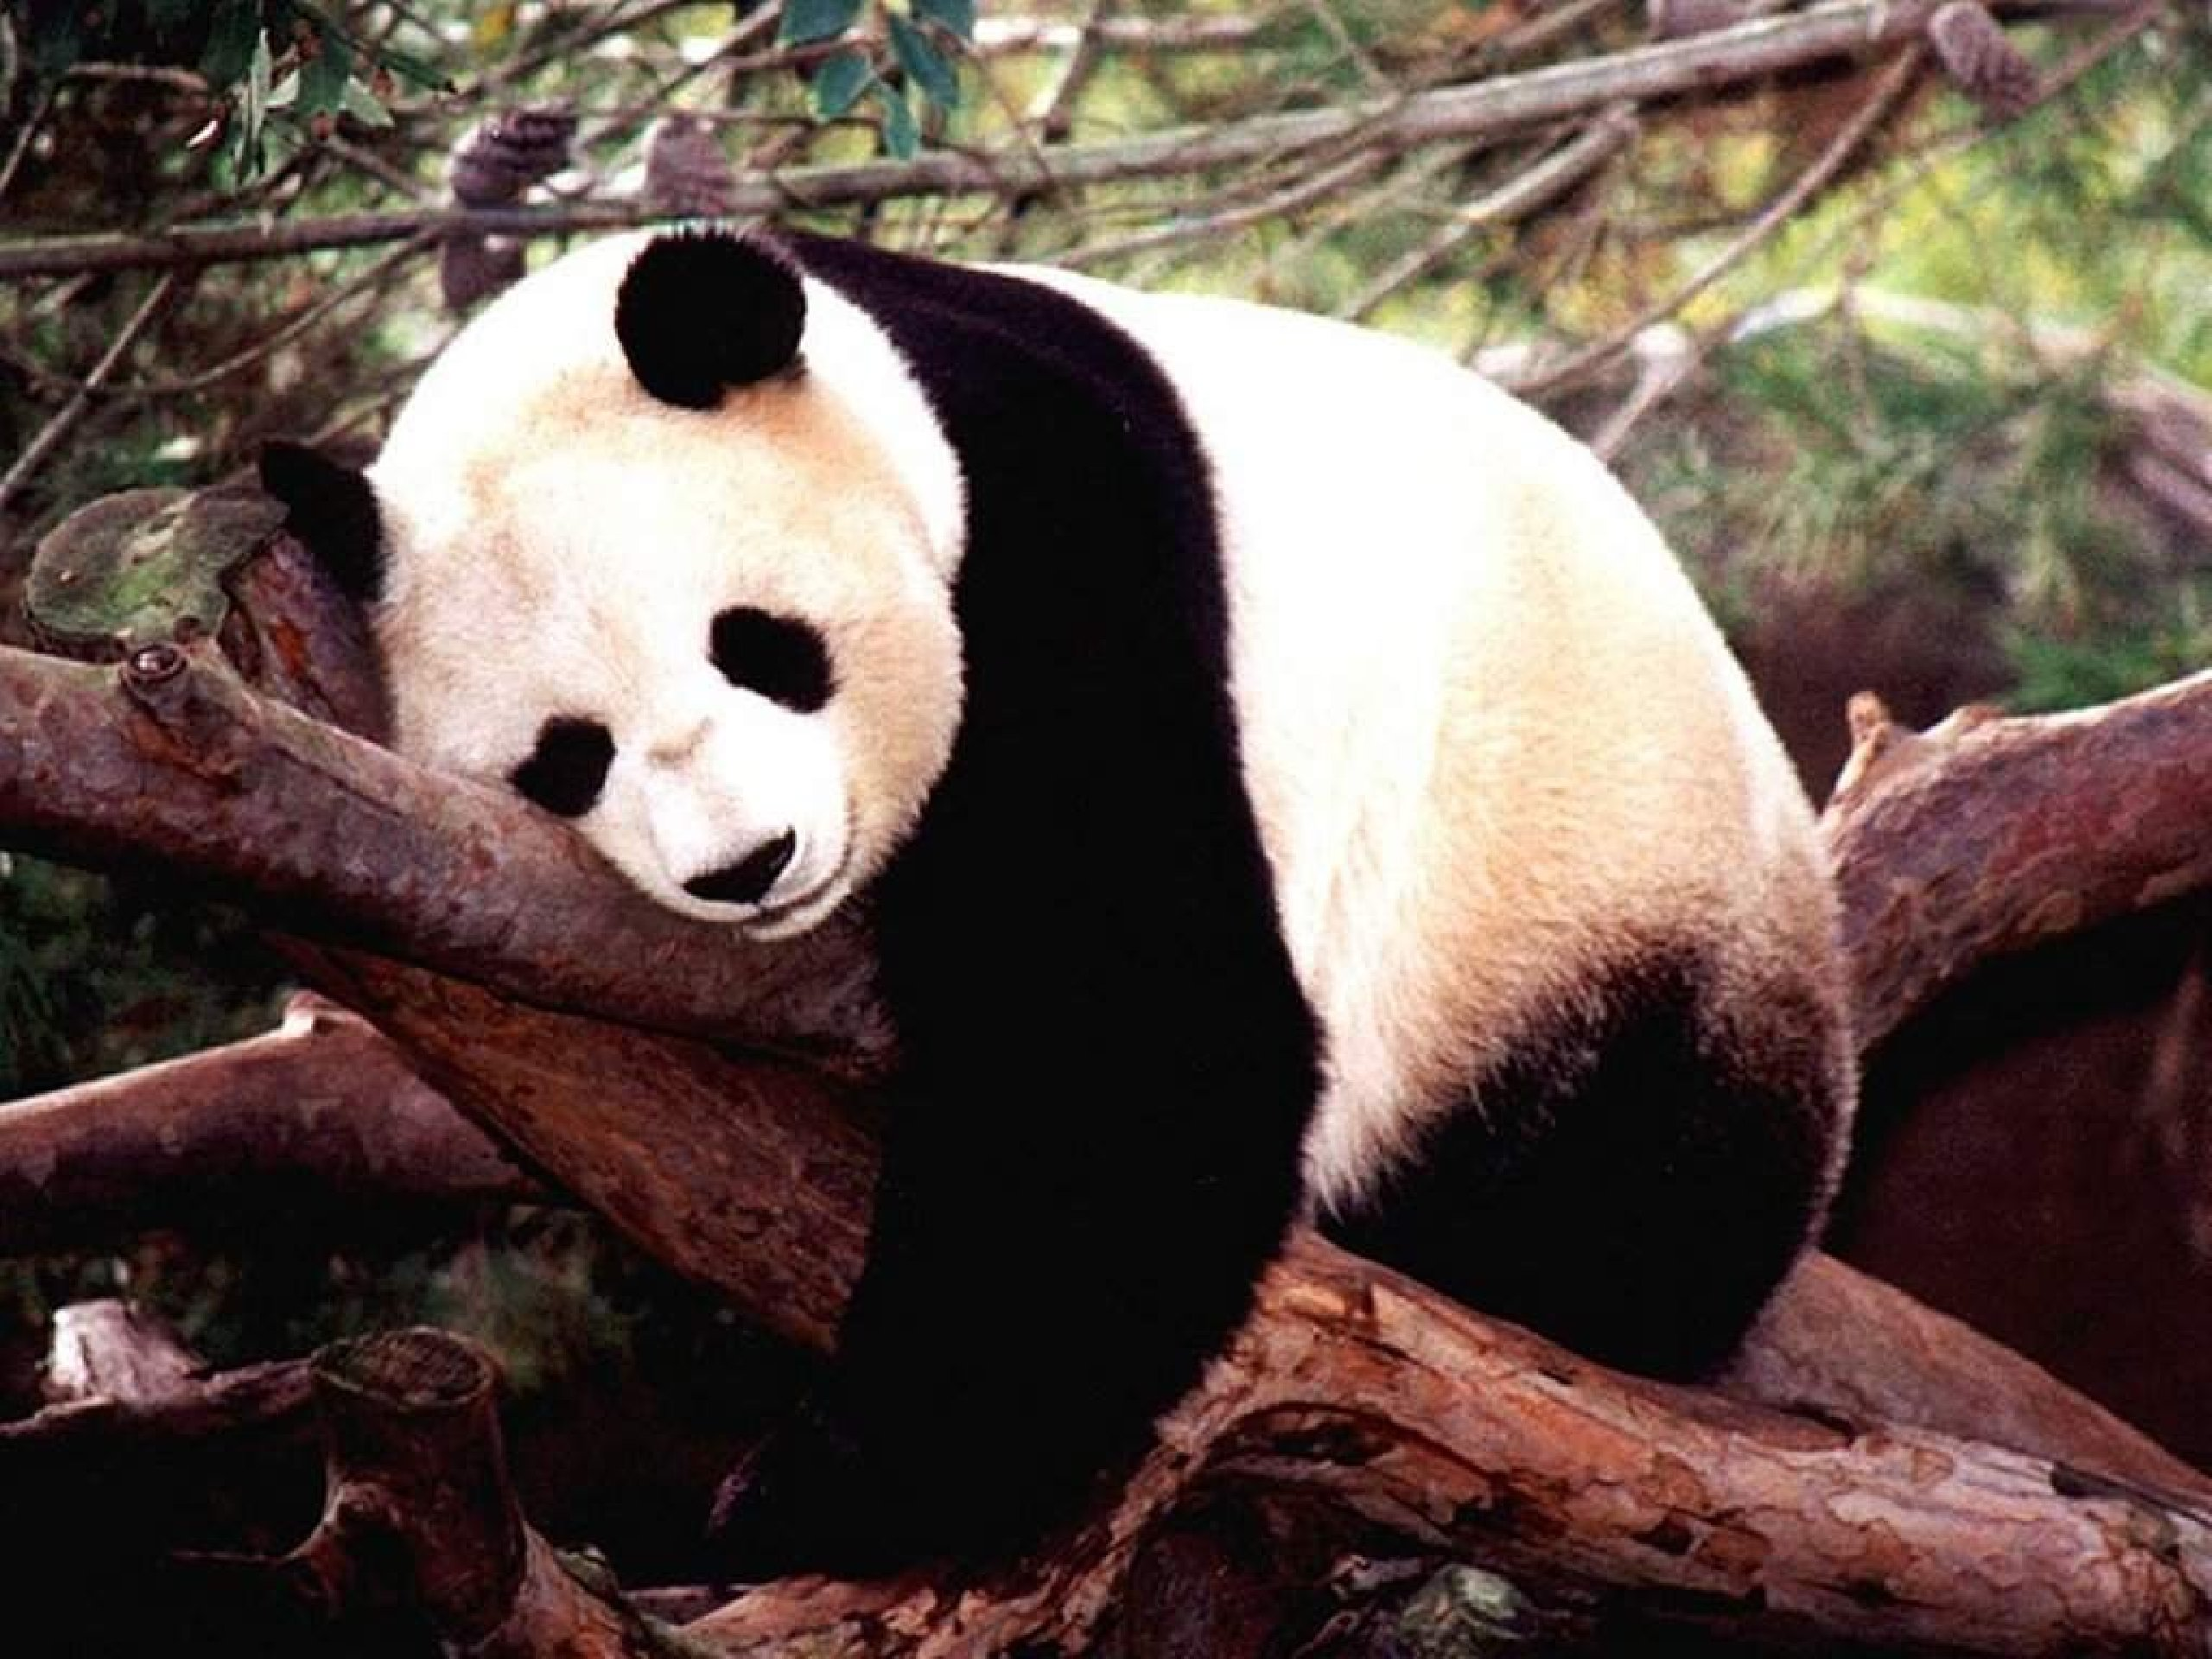 an overview of the diet and other characteristics of the panda a bear species